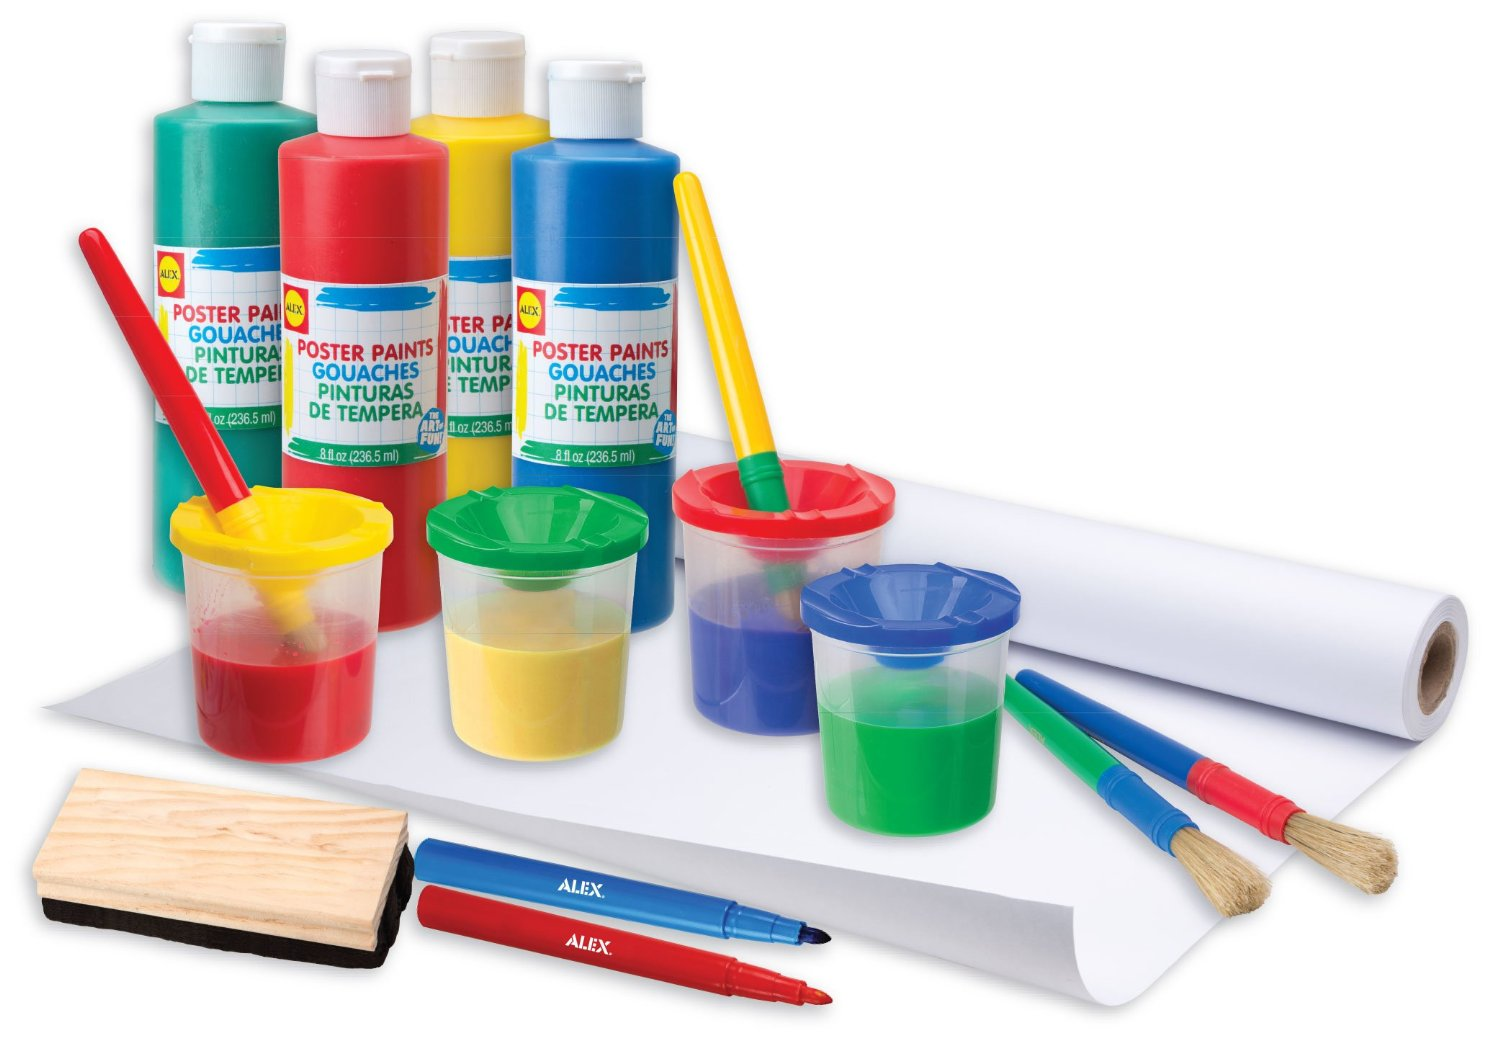 ALEX Toys - Artist Studio, Ultimate Easel Accessories Painting Kit, 21E